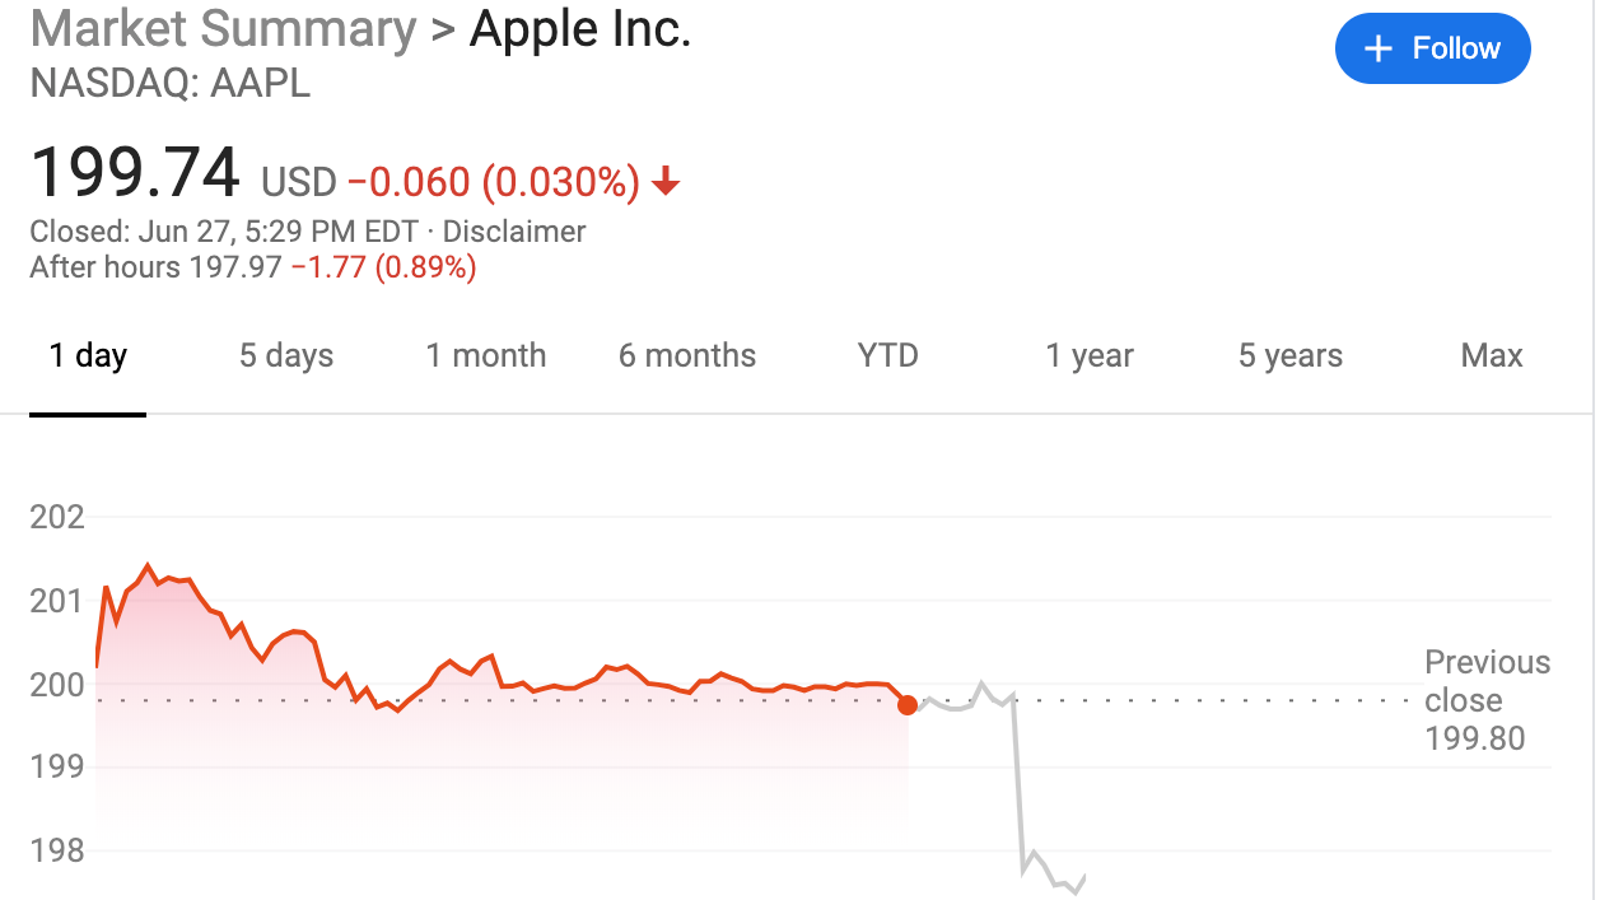 Apple Stock Plunges In Wake of Jony Ive Departure